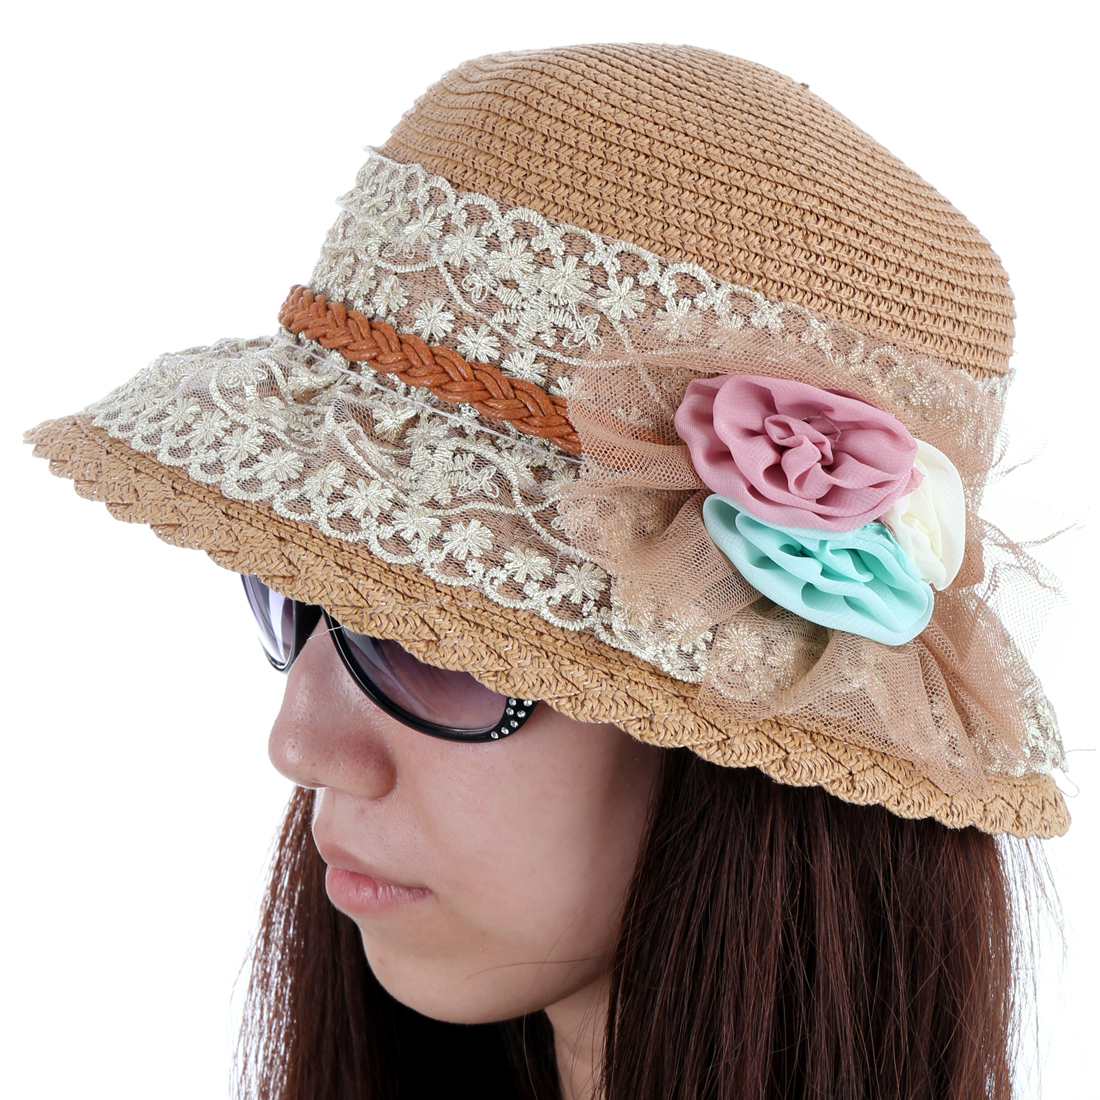 Ladies Chic Lace Covered Handmade Flower Decor Light Brown Sun Hat